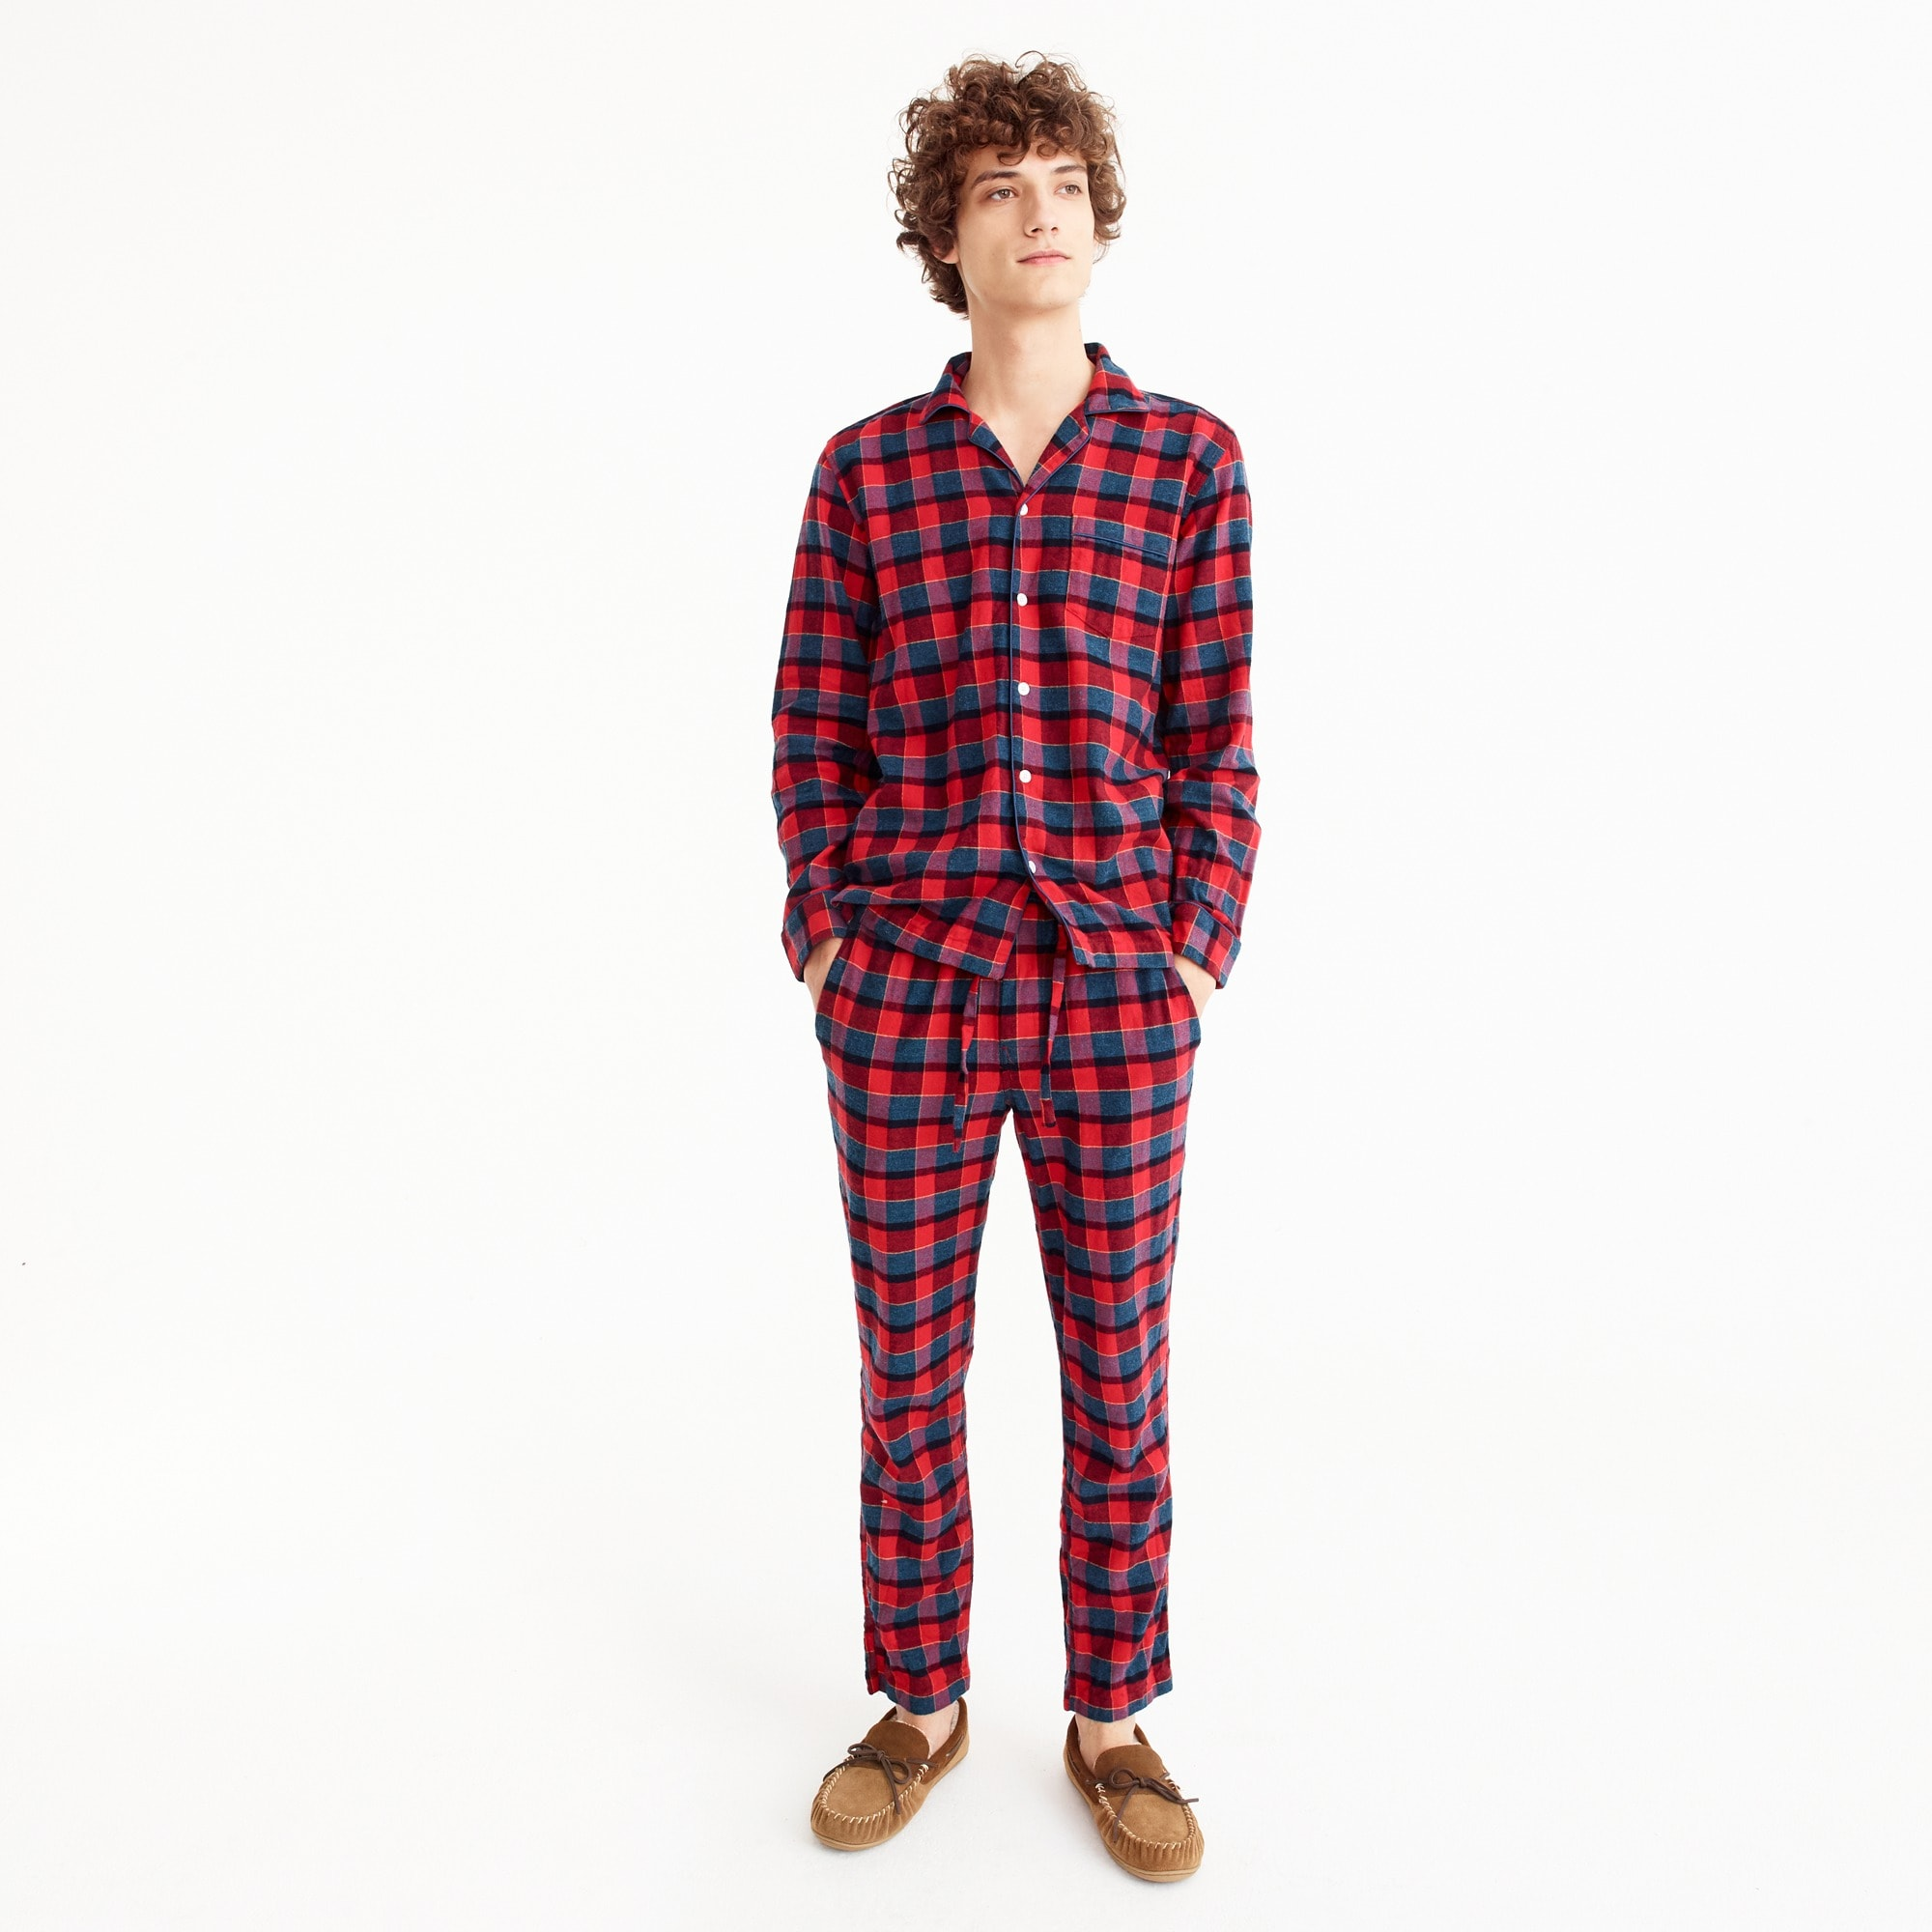 Image 1 for Pajama set in red and blue check